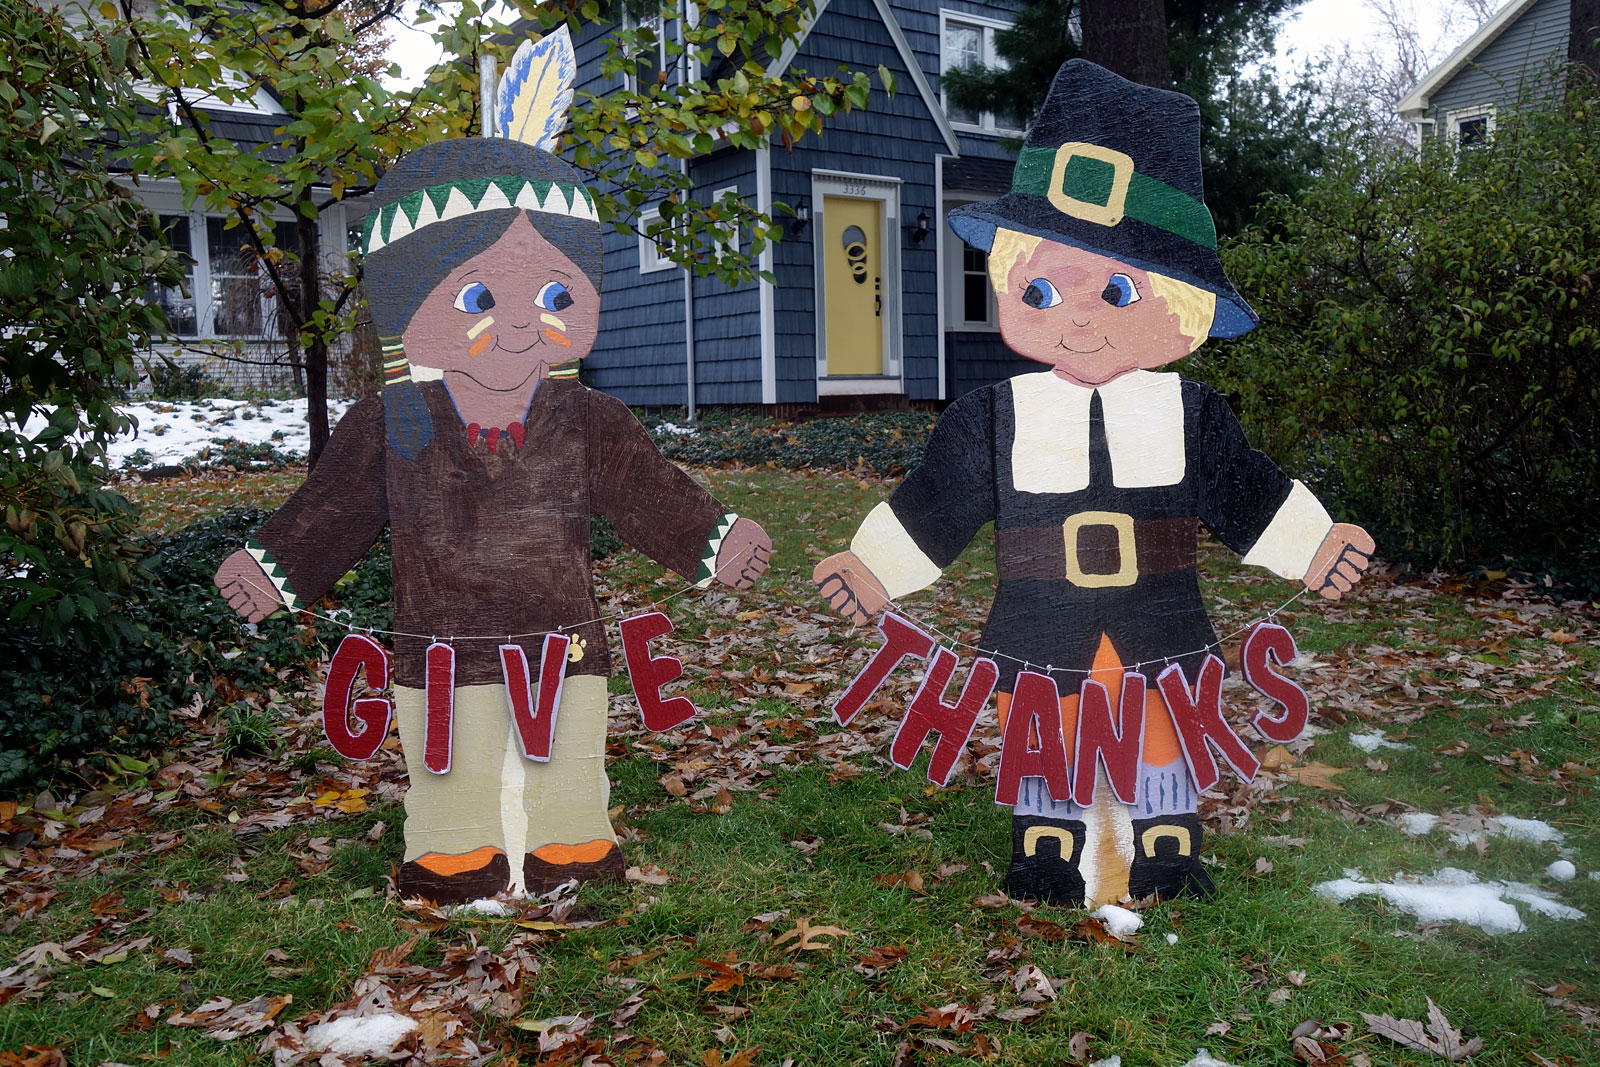 Wooden Thanksgiving figures on lawn in front of house on Culver Road